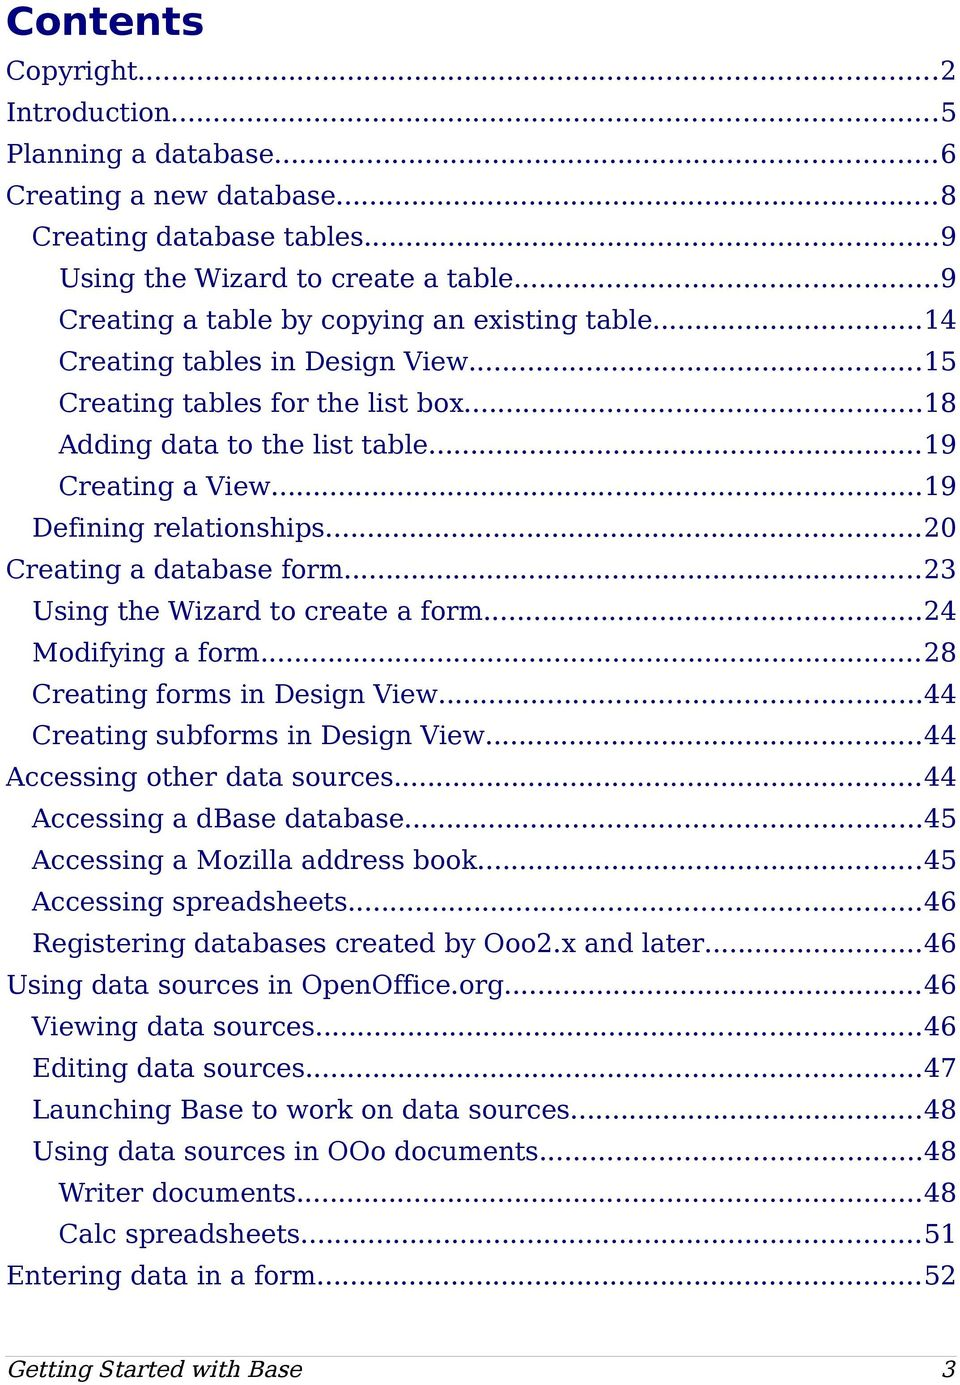 ..19 Defining relationships...20 Creating a database form...23 Using the Wizard to create a form...24 Modifying a form...28 Creating forms in Design View...44 Creating subforms in Design View.